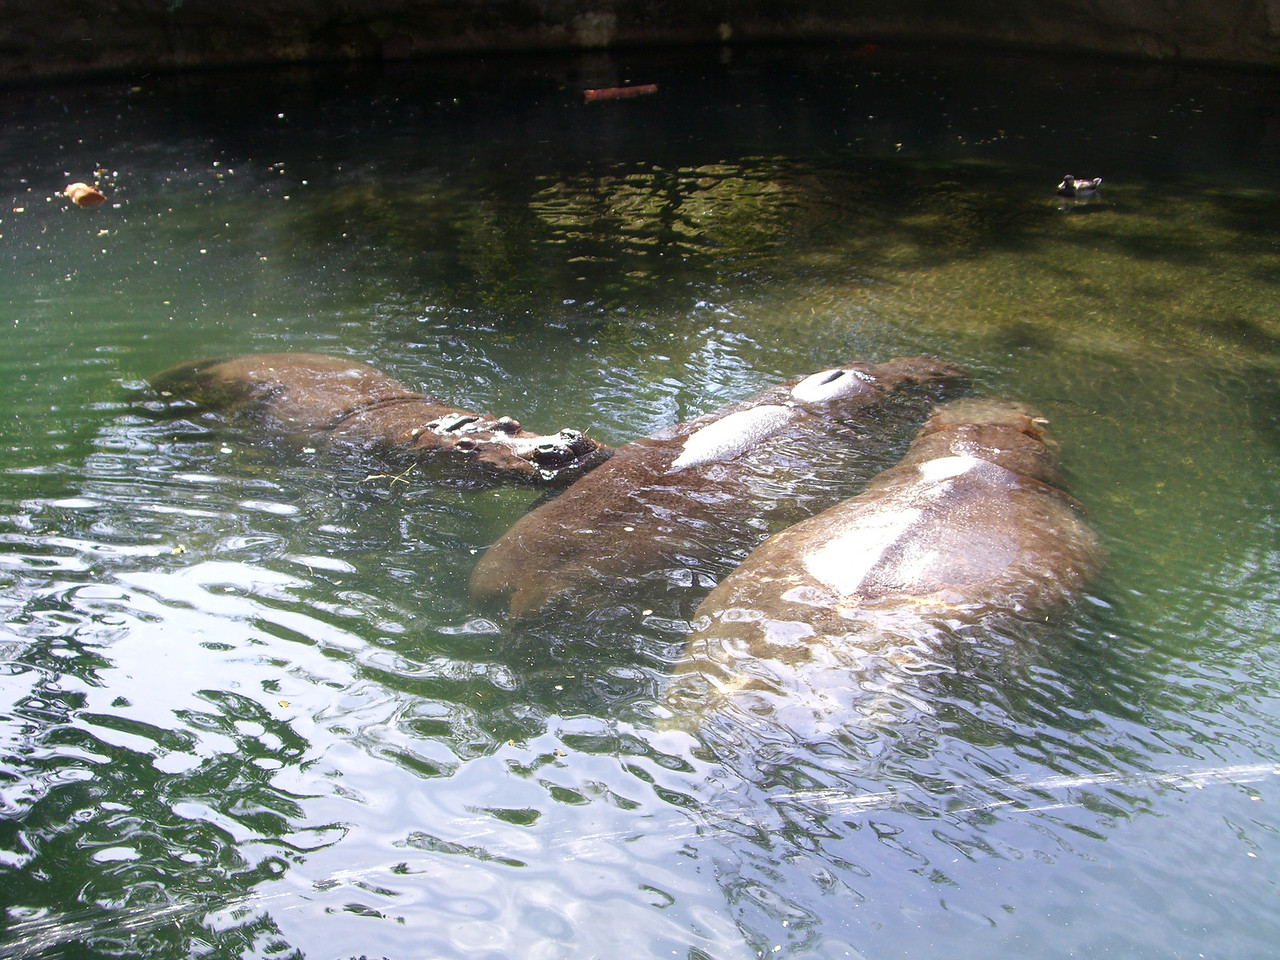 The three hippos relaxing in the water.